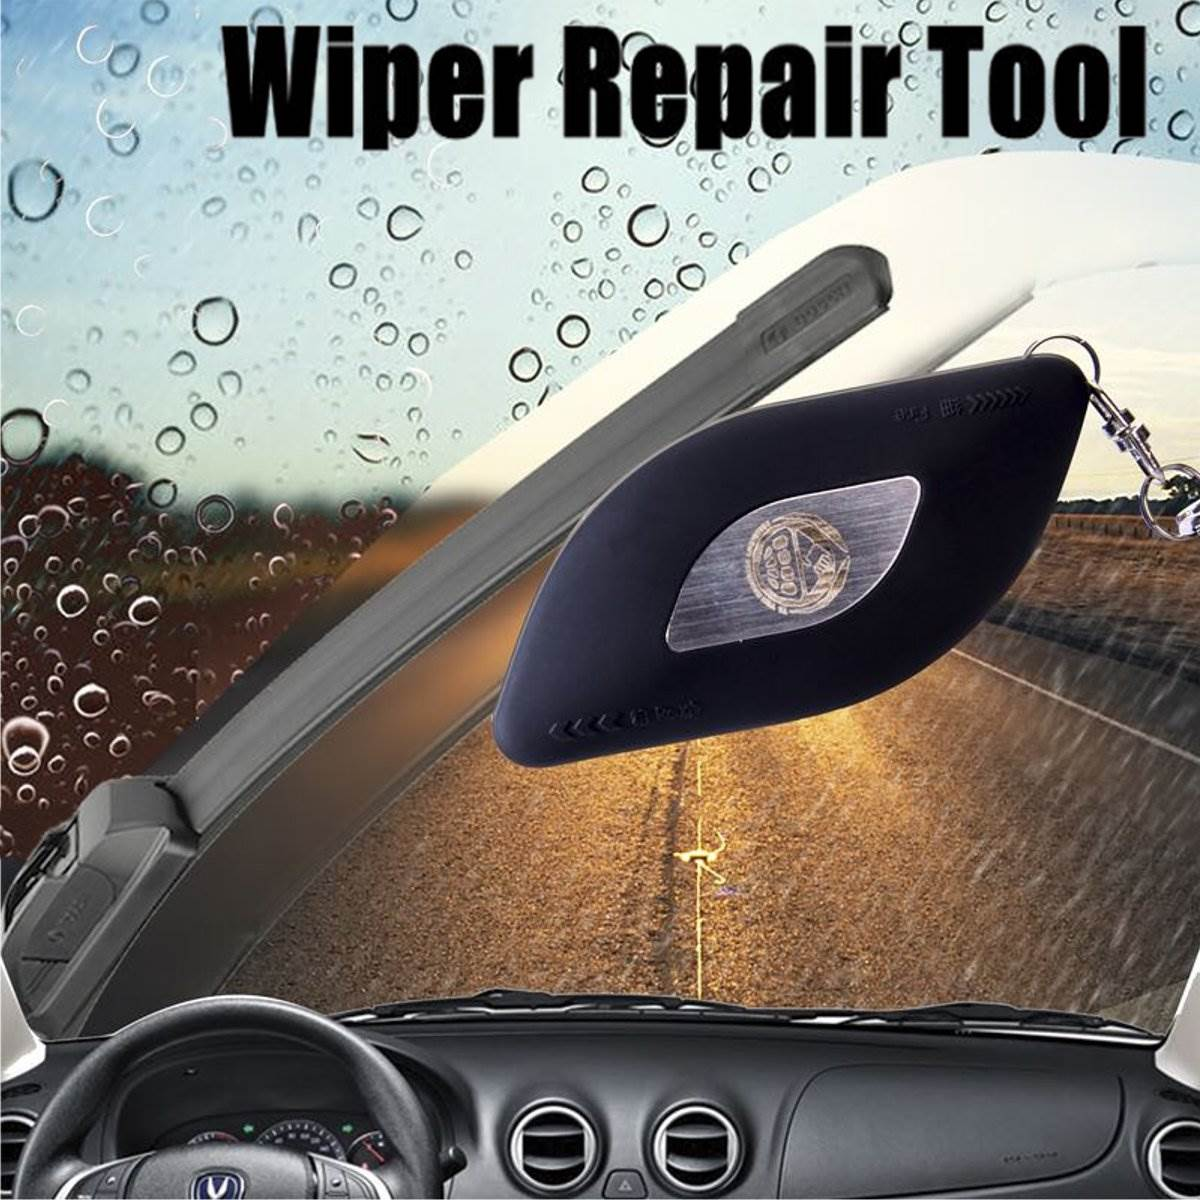 Black 1PC Car Auto Windscreen Windshield Wiper Repair Tool Blade Windscreen Wiper Restorer Universal universal wiper blade for u hook 14 16 17 18 20 21 22 24 26 windscreen wiper j hook windshield hybrid wiper blade 1 pc